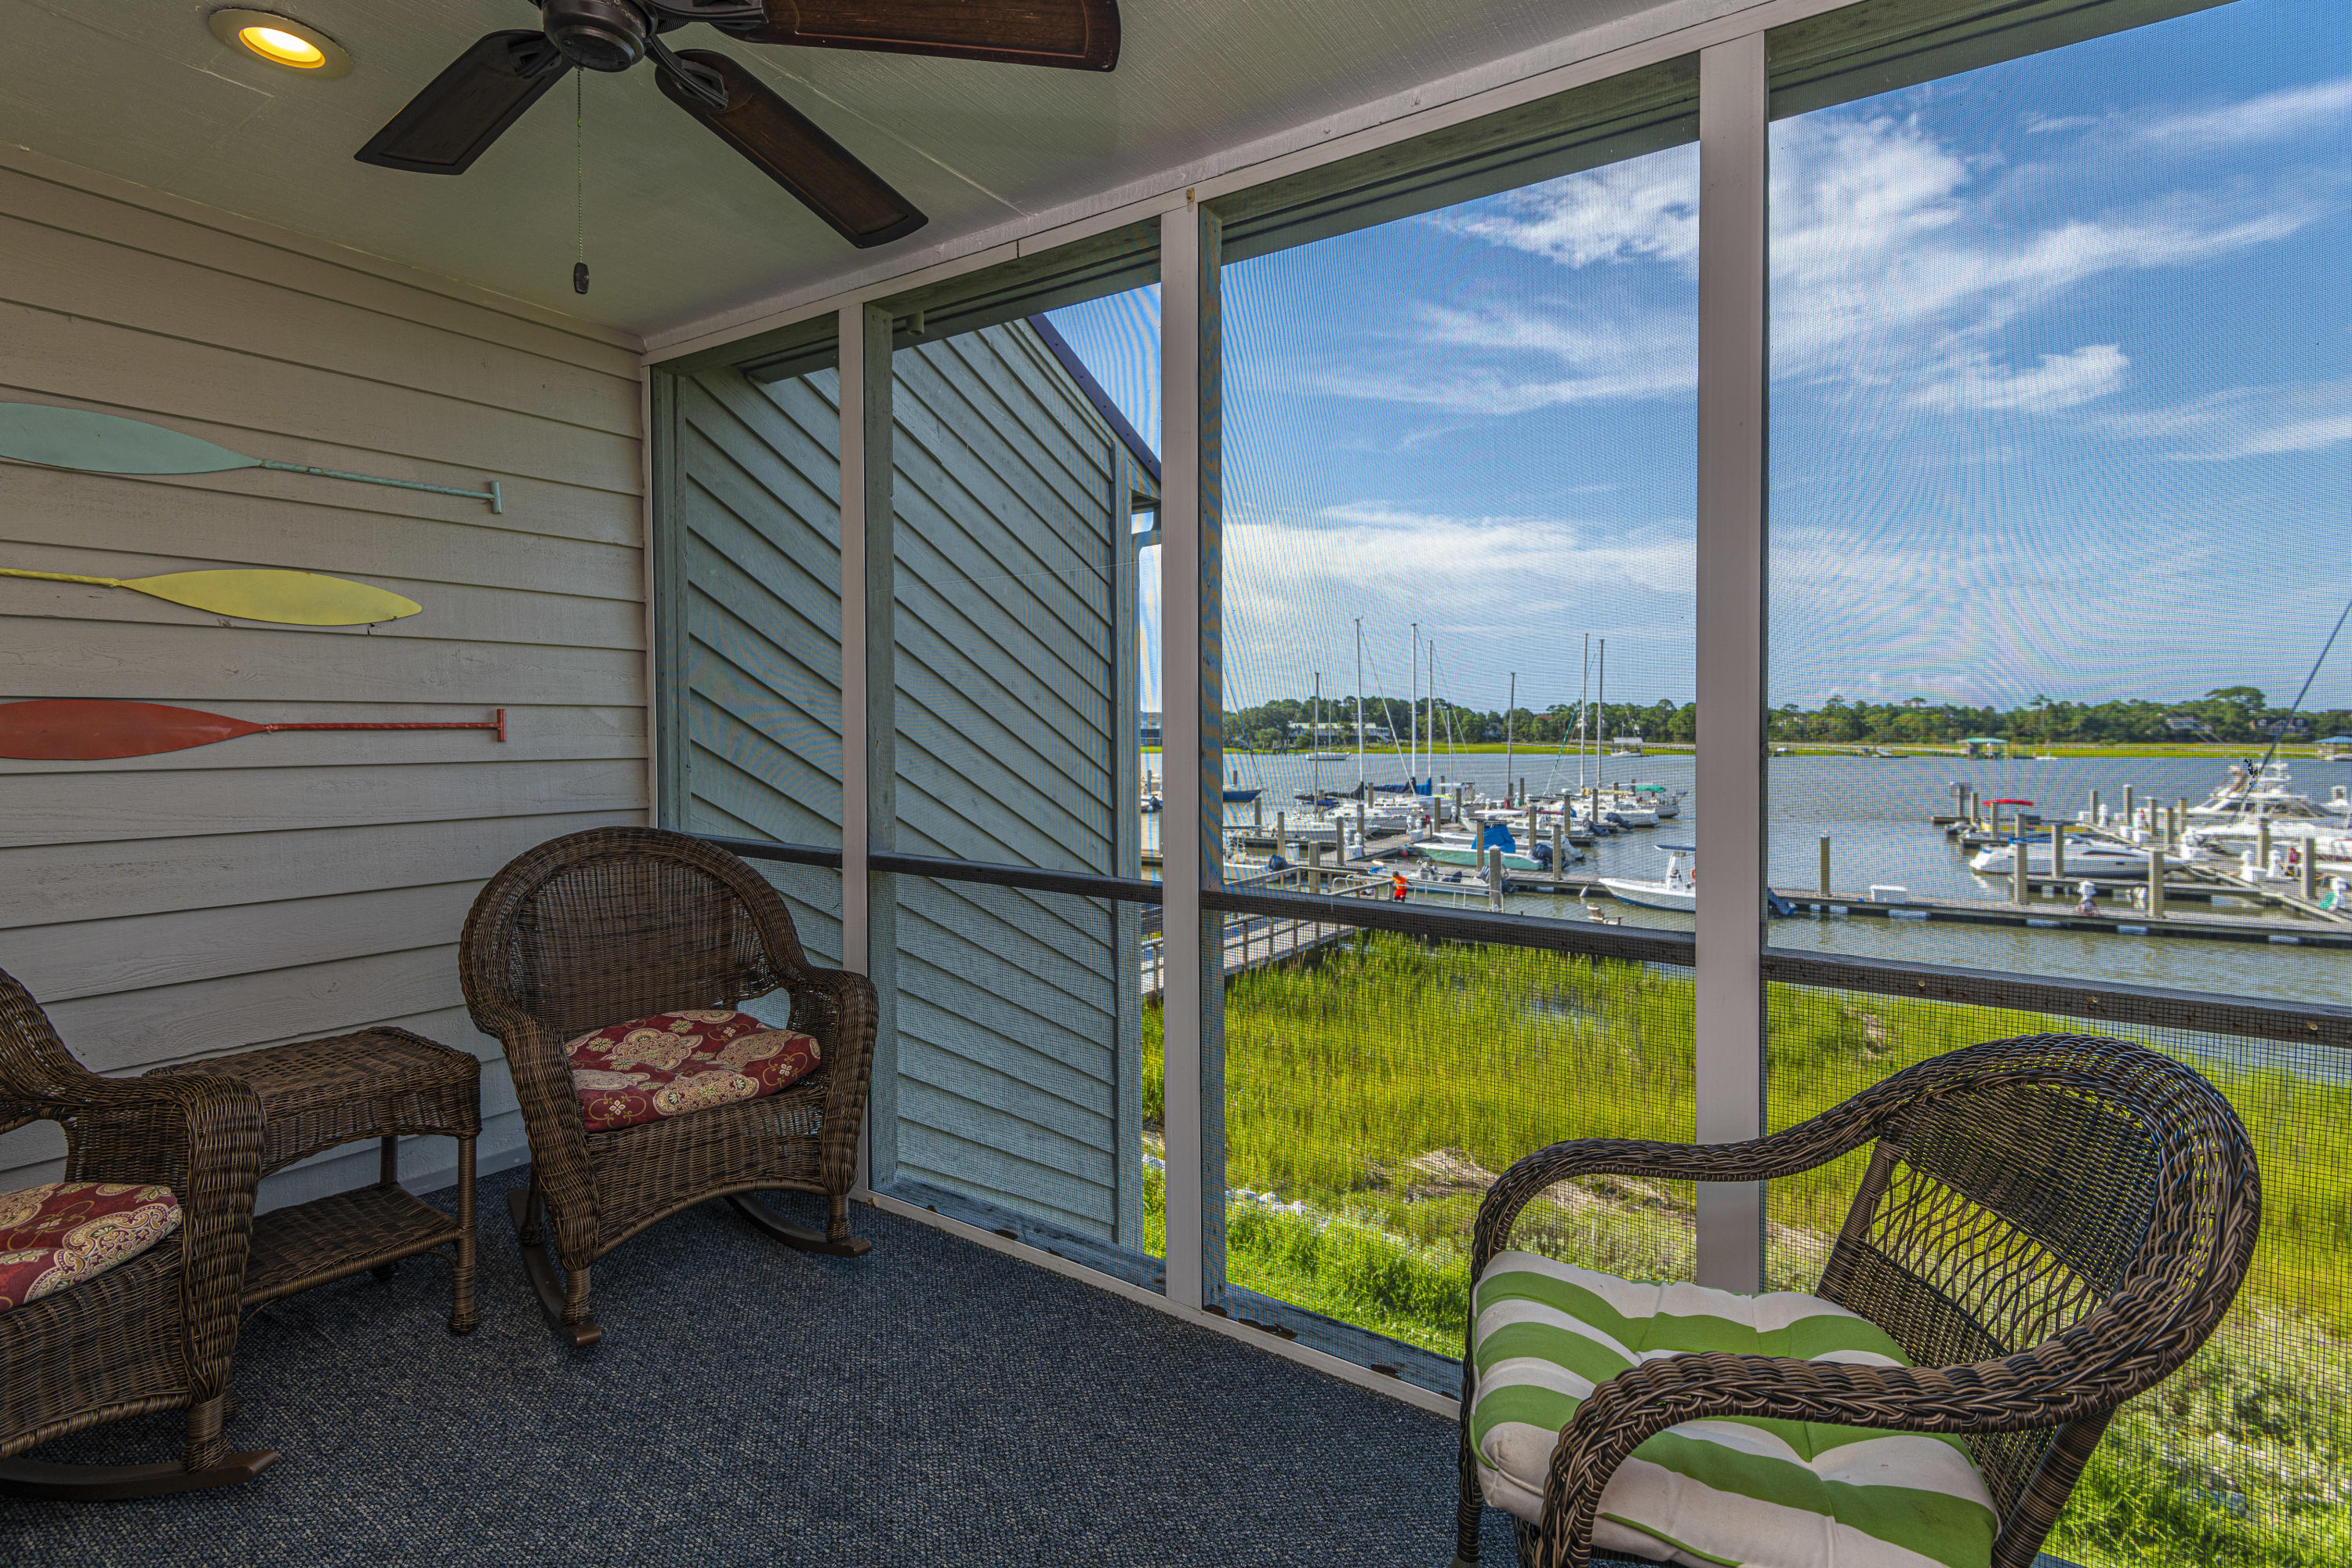 Mariners Cay Homes For Sale - 71 Mariners Cay, Folly Beach, SC - 42